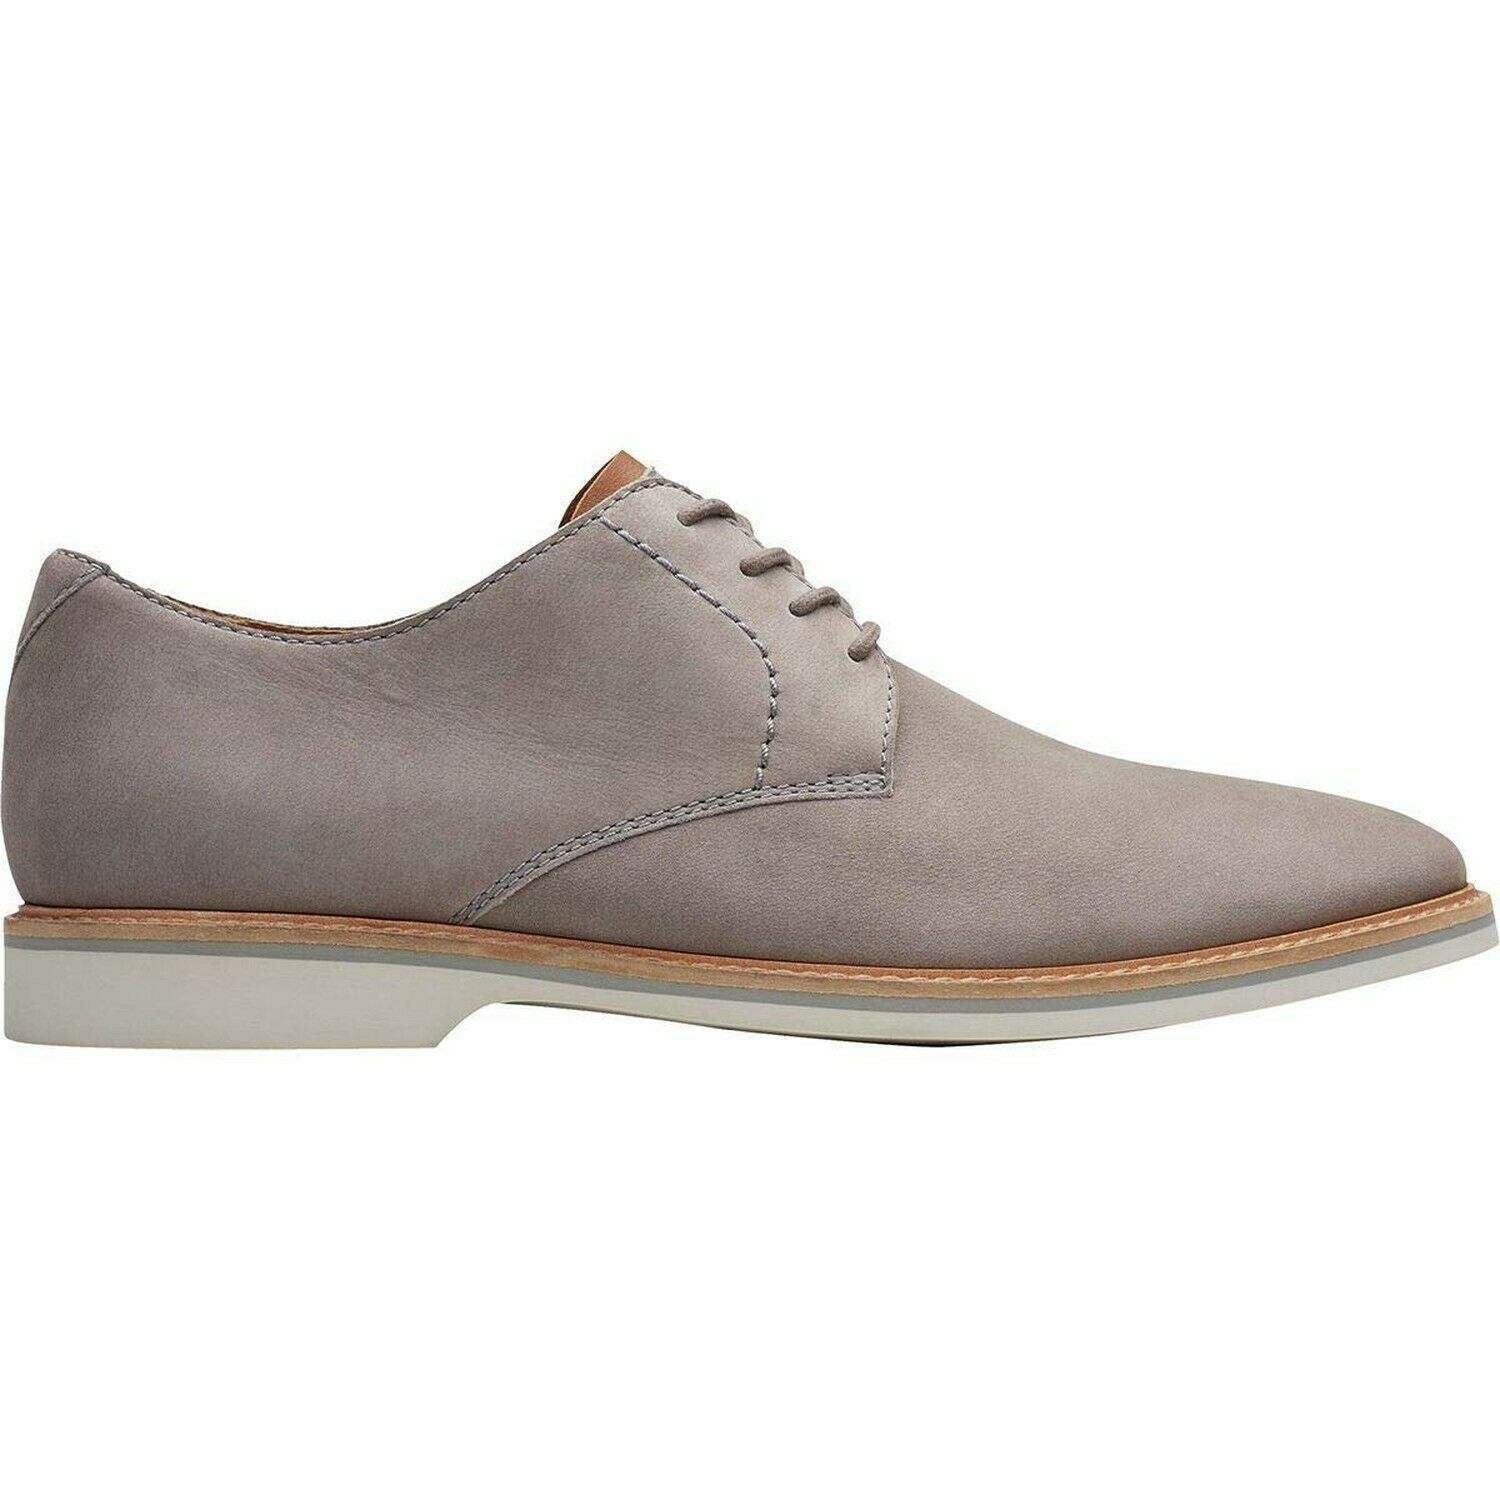 CLARKS Artisan Men's Atticus Lace Dress Shoes Oxford, Grey Nubuck, Size 9.5 D US